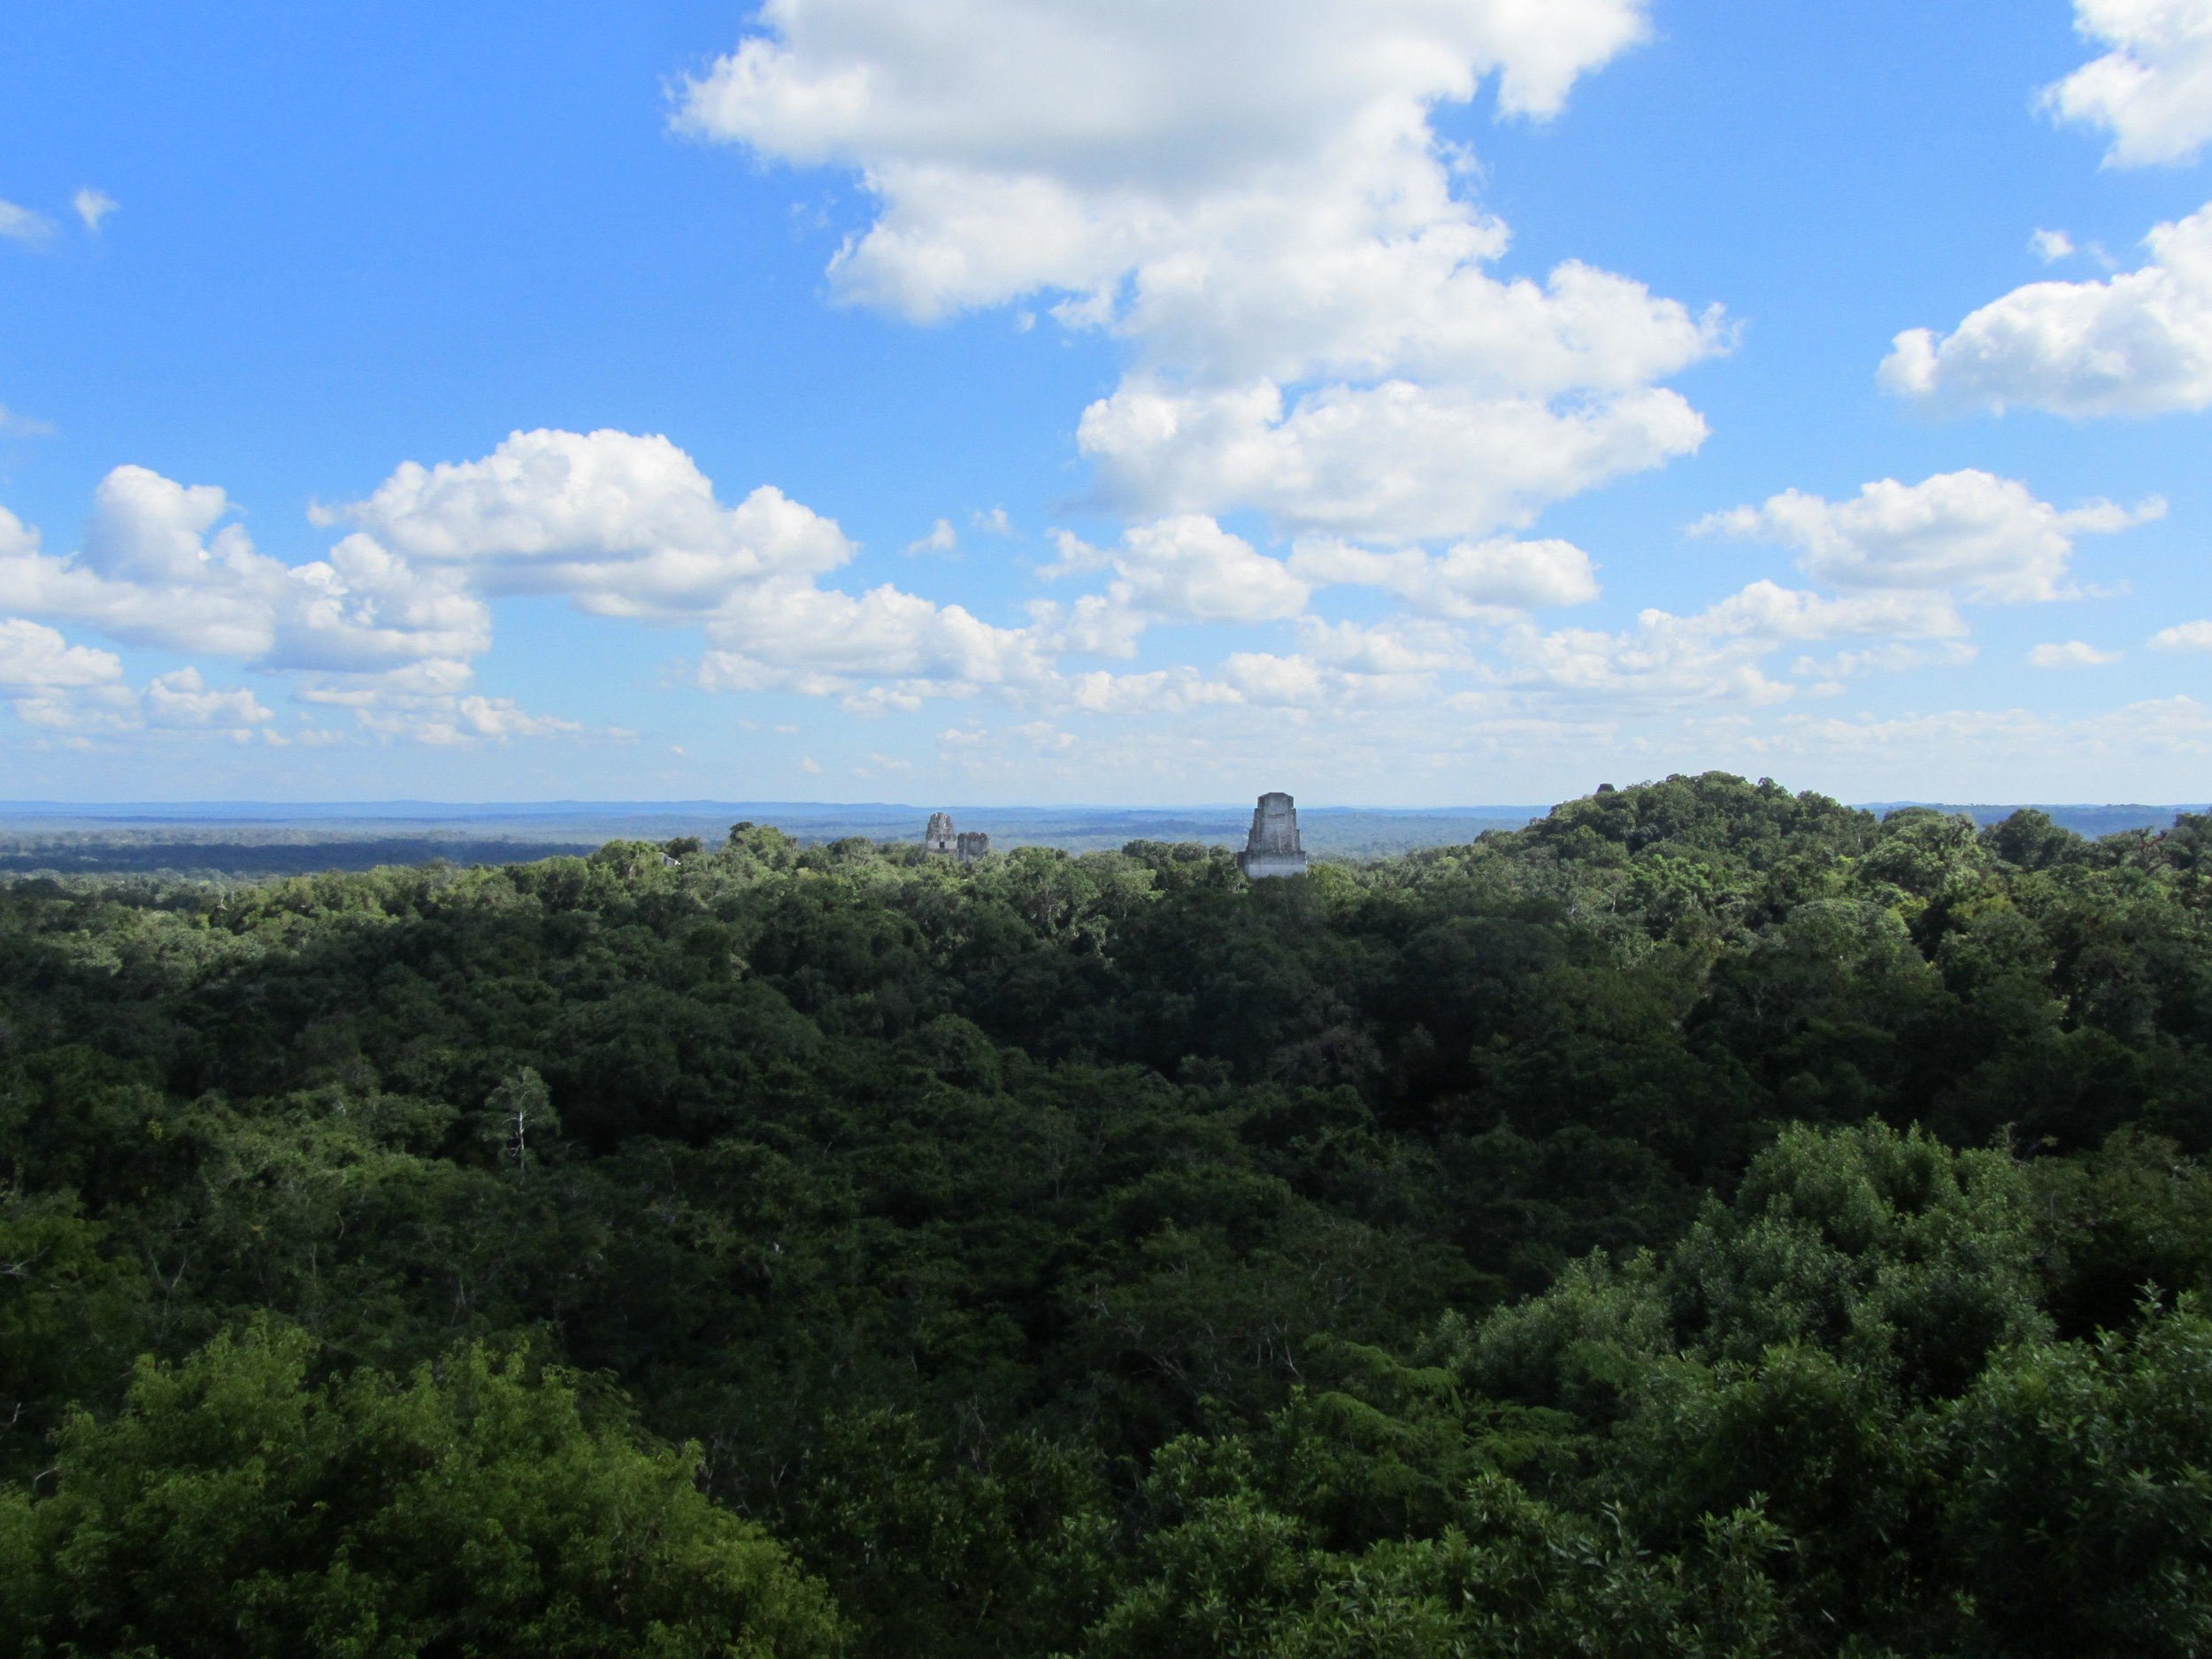 Atop the highest vantage point in Tikal, Guatemala. December 2012.